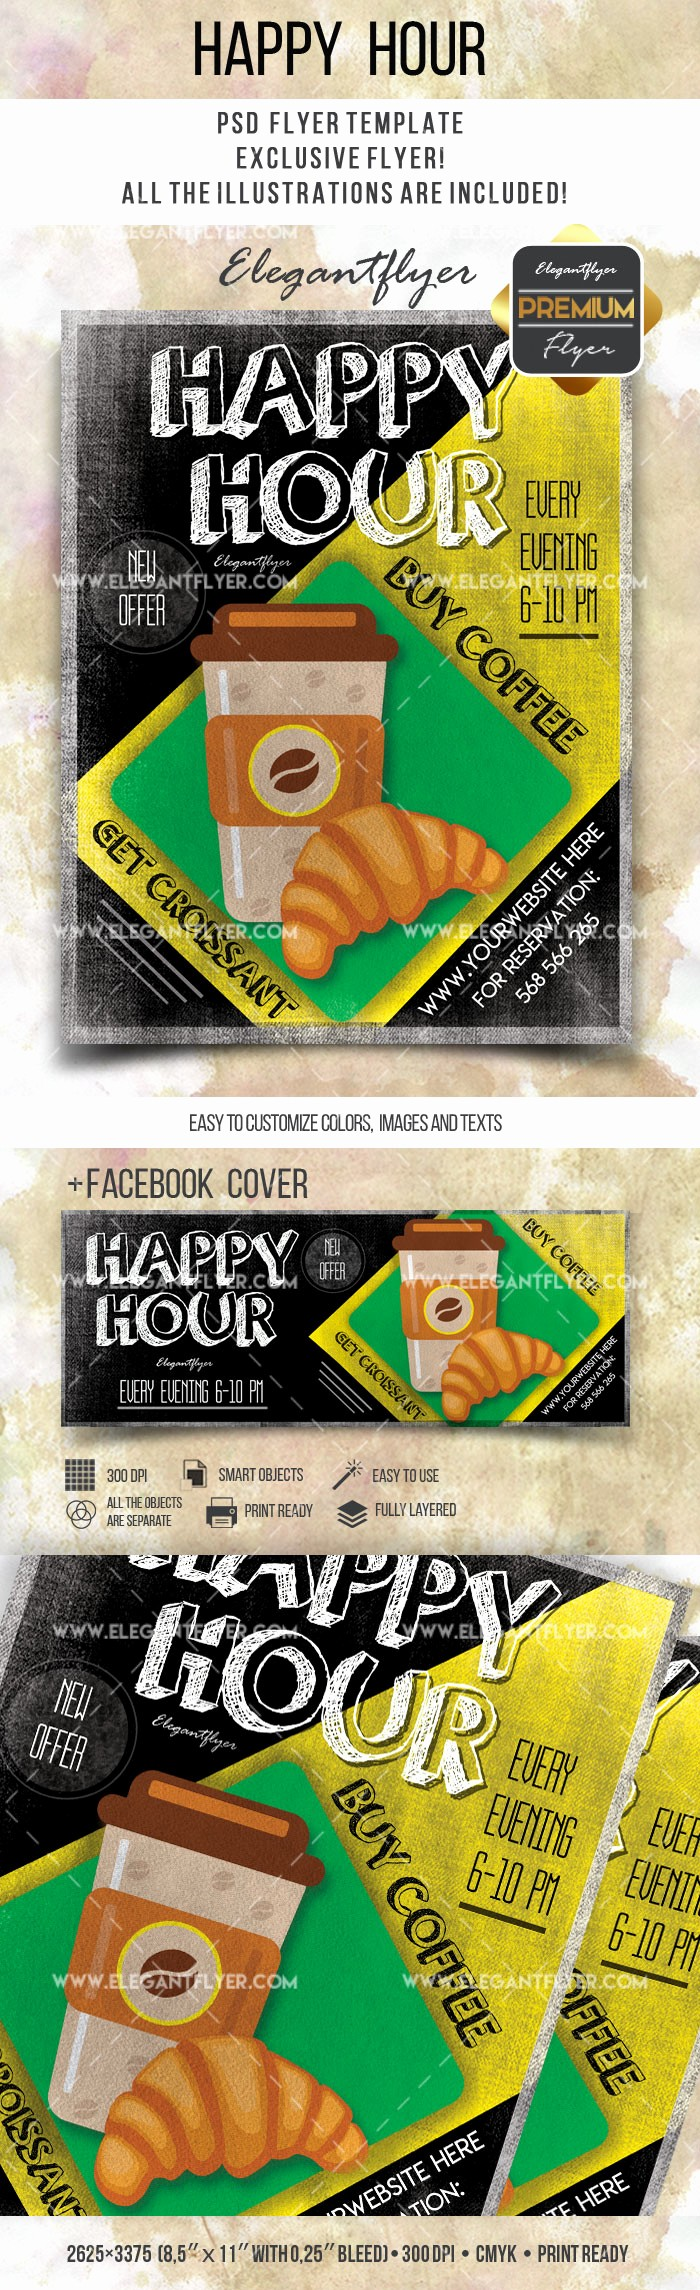 Happy Hour Flyer Template Free Awesome Happy Hour Invitation Template – by Elegantflyer